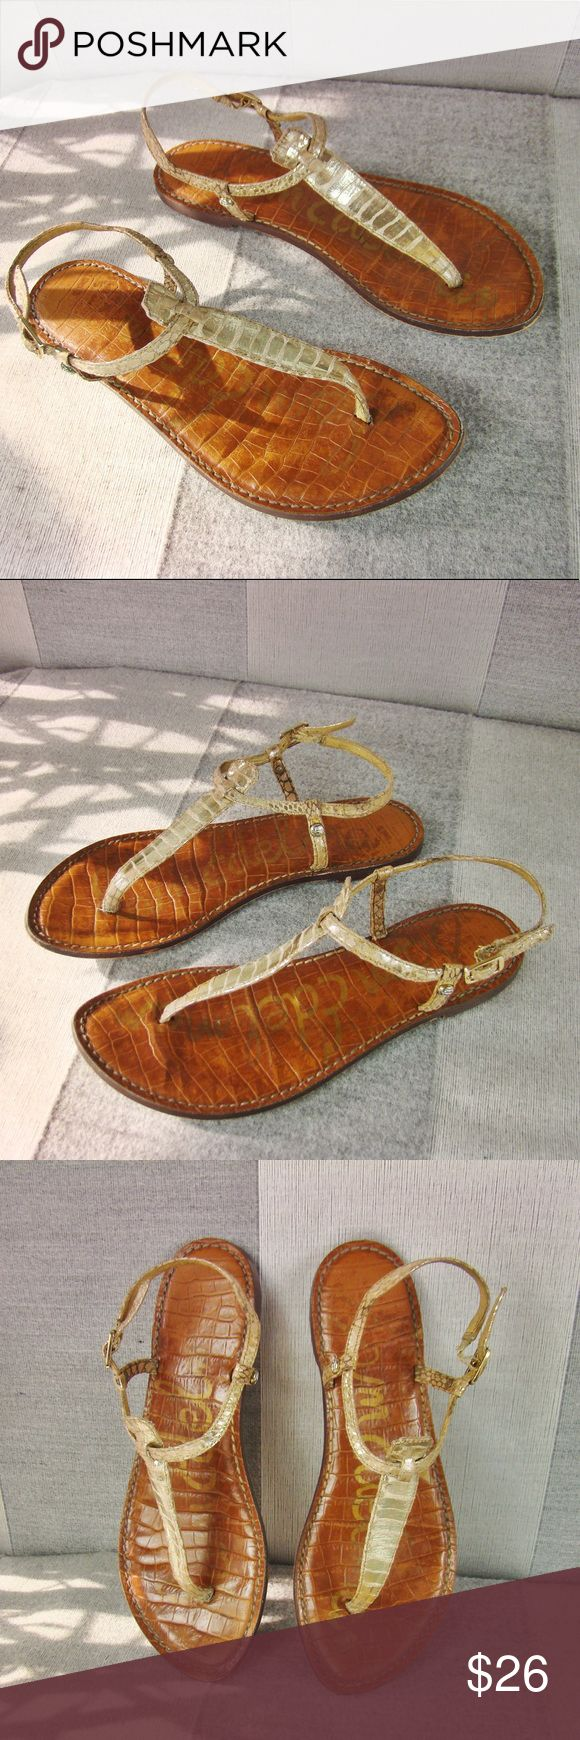 Sam Edelman Gigi sandals Very Good condition, discoloration shows on the straps, snakeskin area. Sam Edelman Shoes Sandals